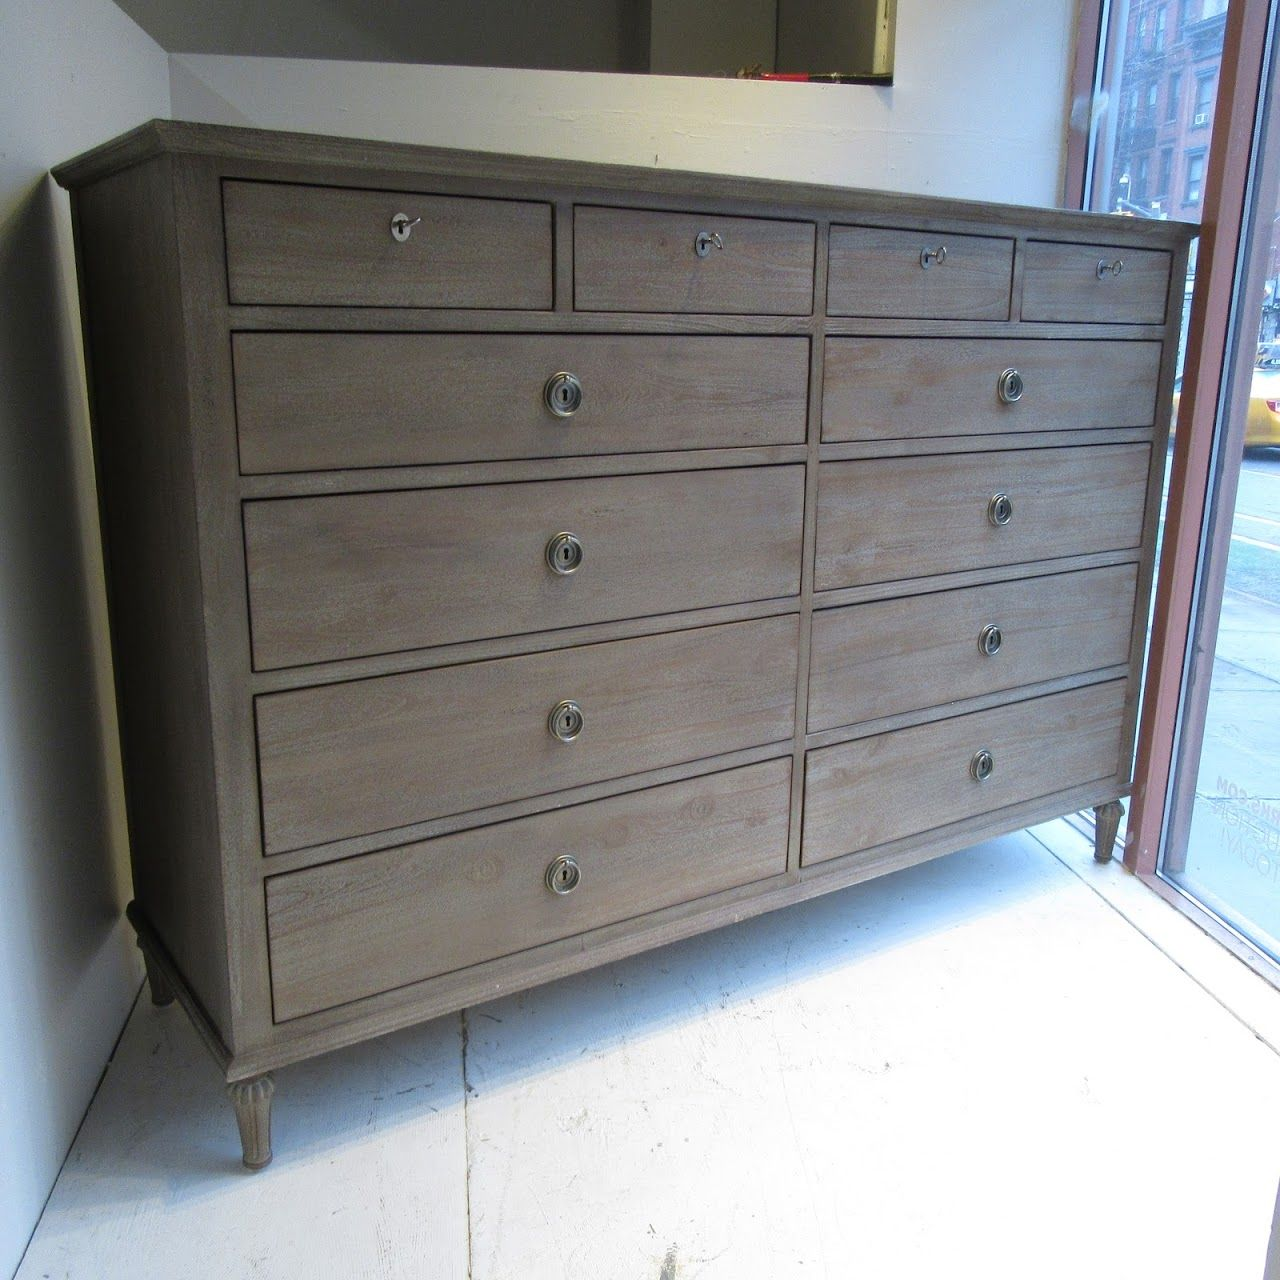 Restoration Hardware Maison 12 Drawer Dresser